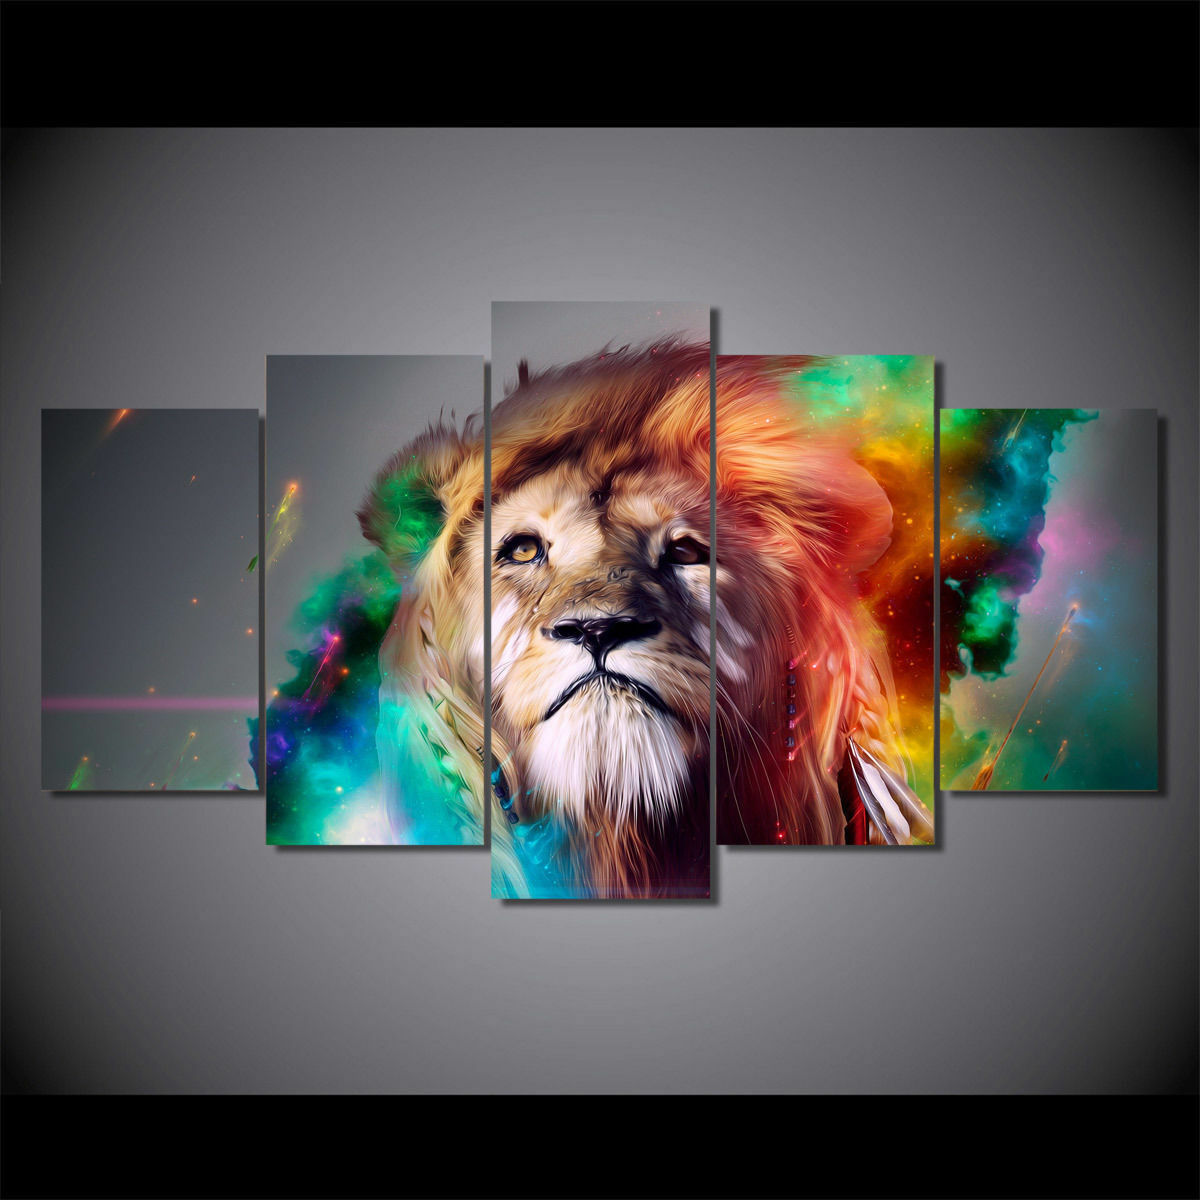 Lion Farbeful abstract print poster canvas decoration 5 pieces